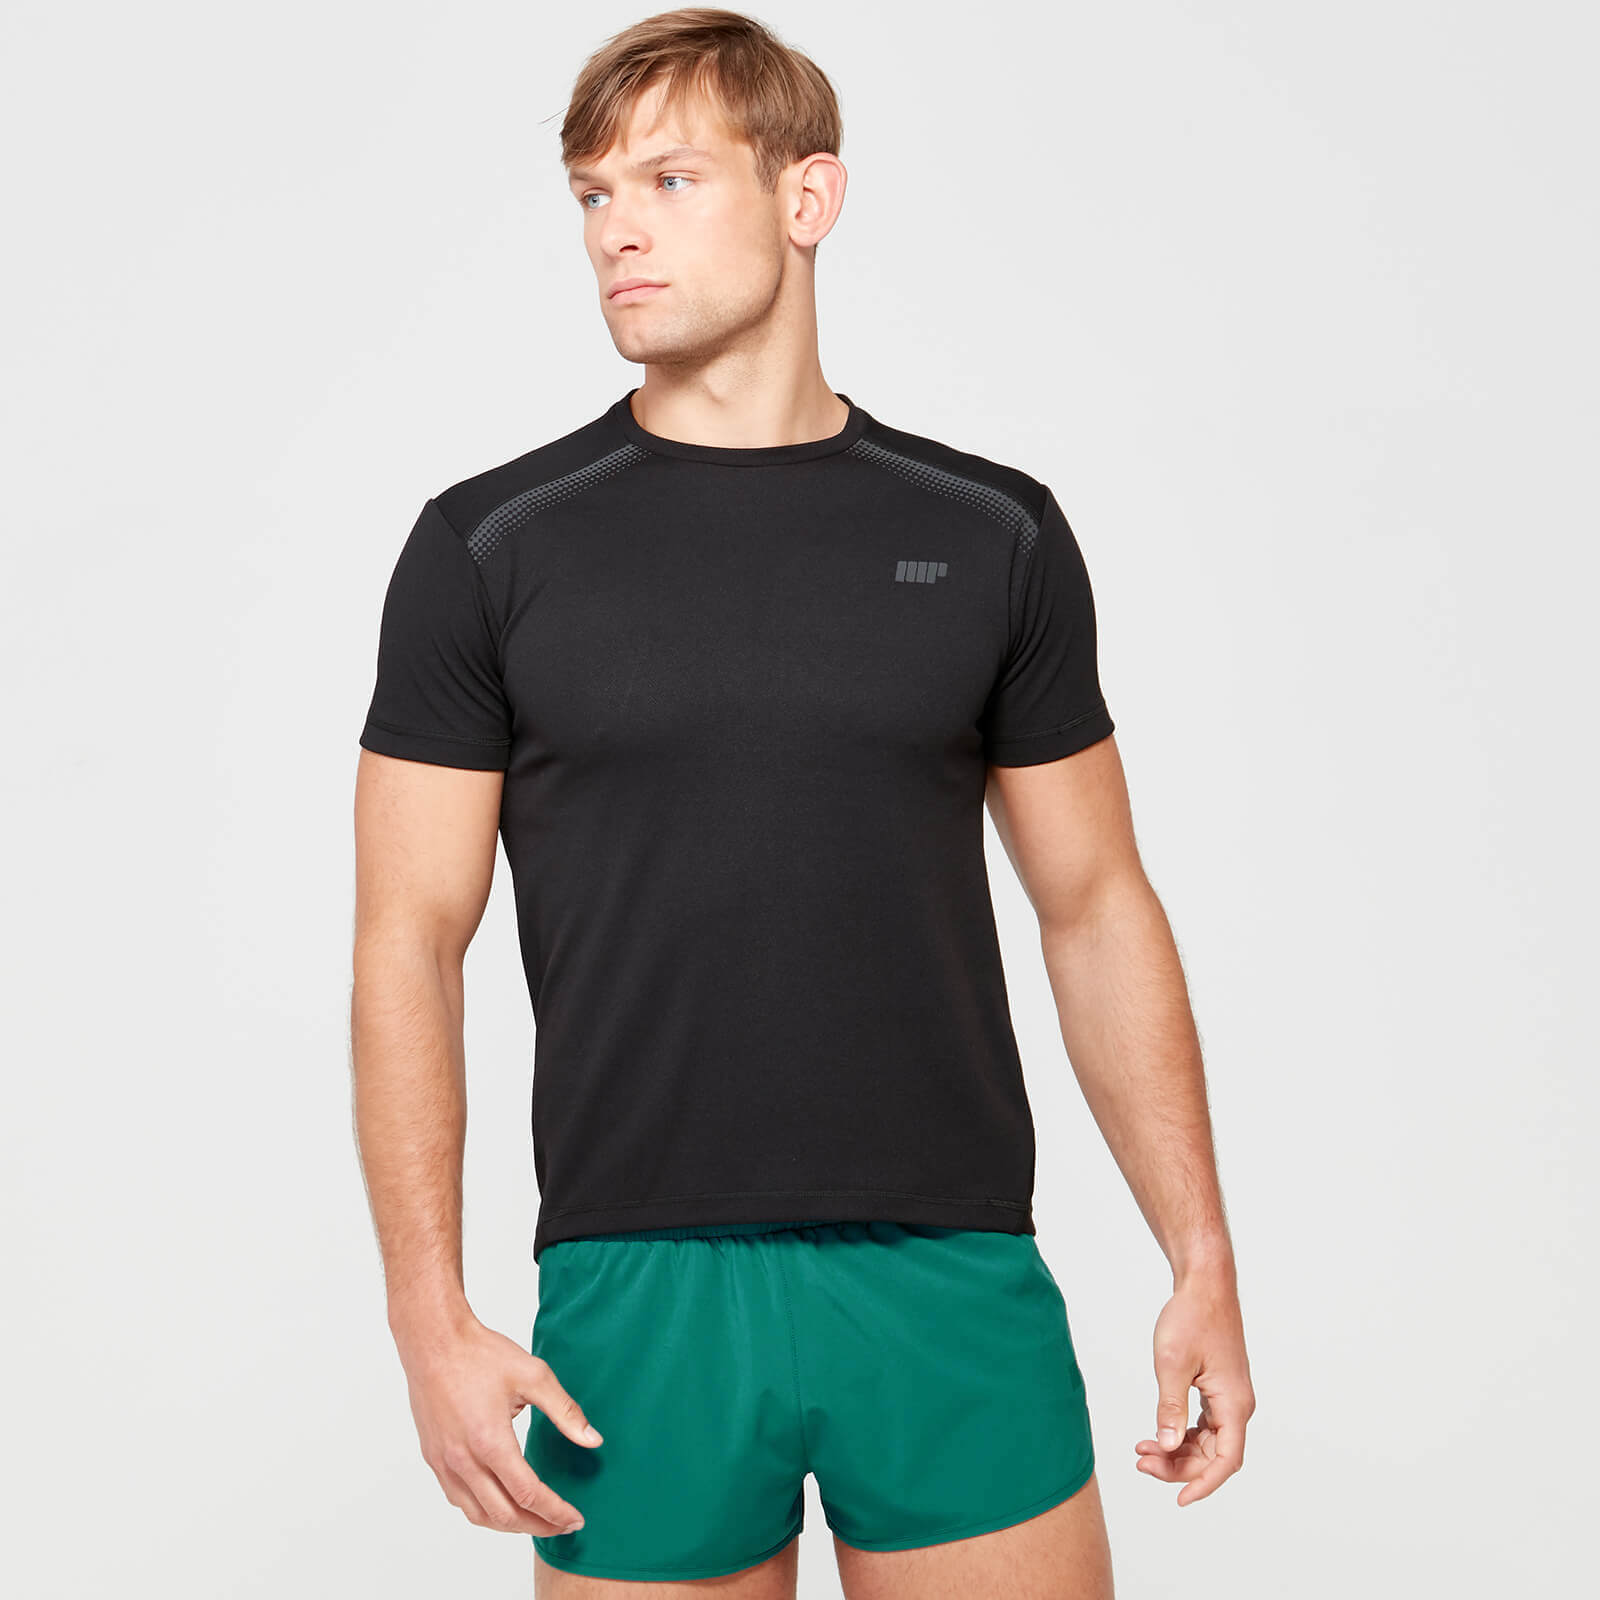 Boost T-Shirt - Black - S